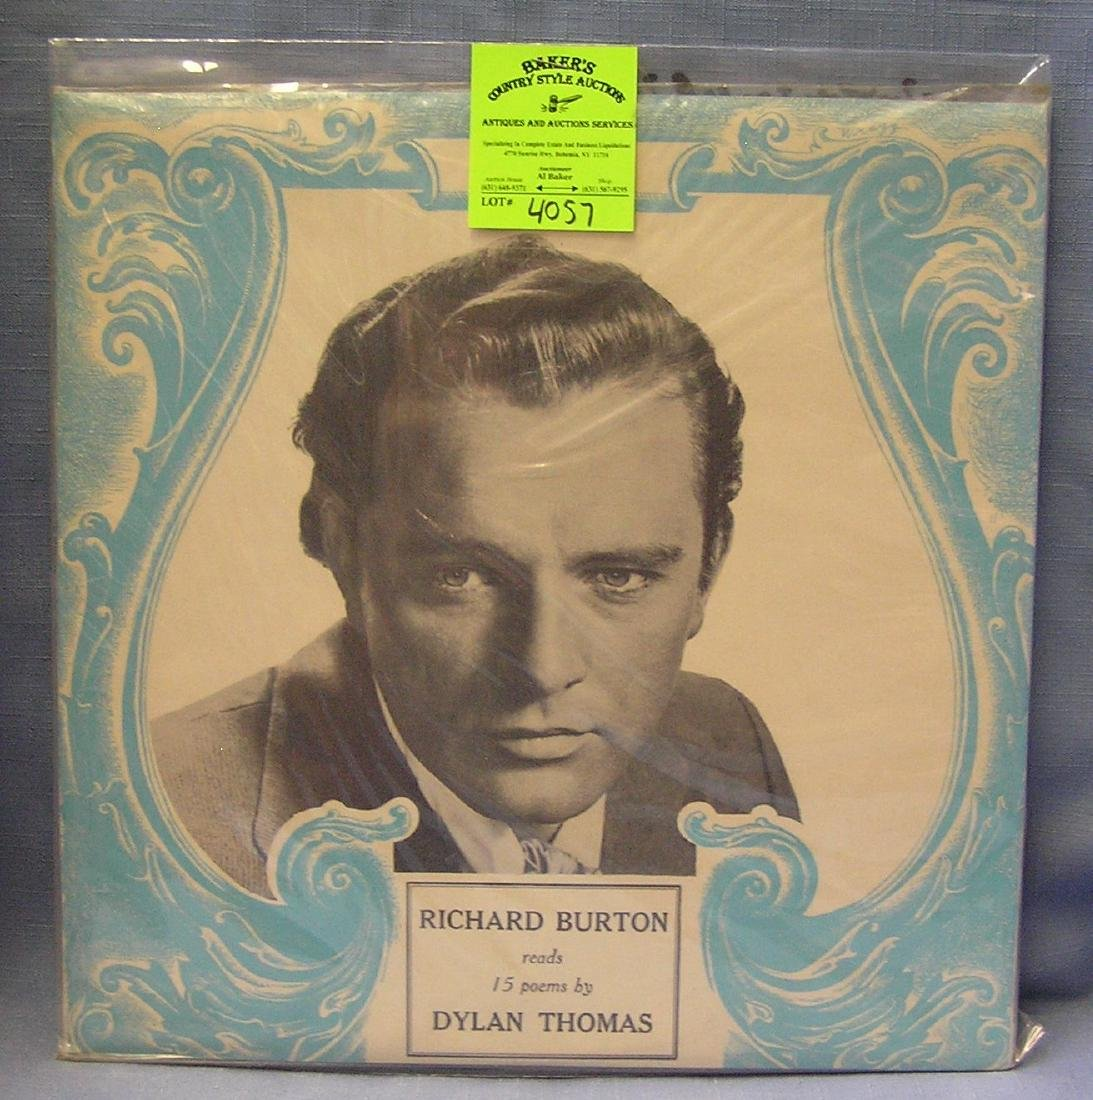 Vintage Richard Burton record album